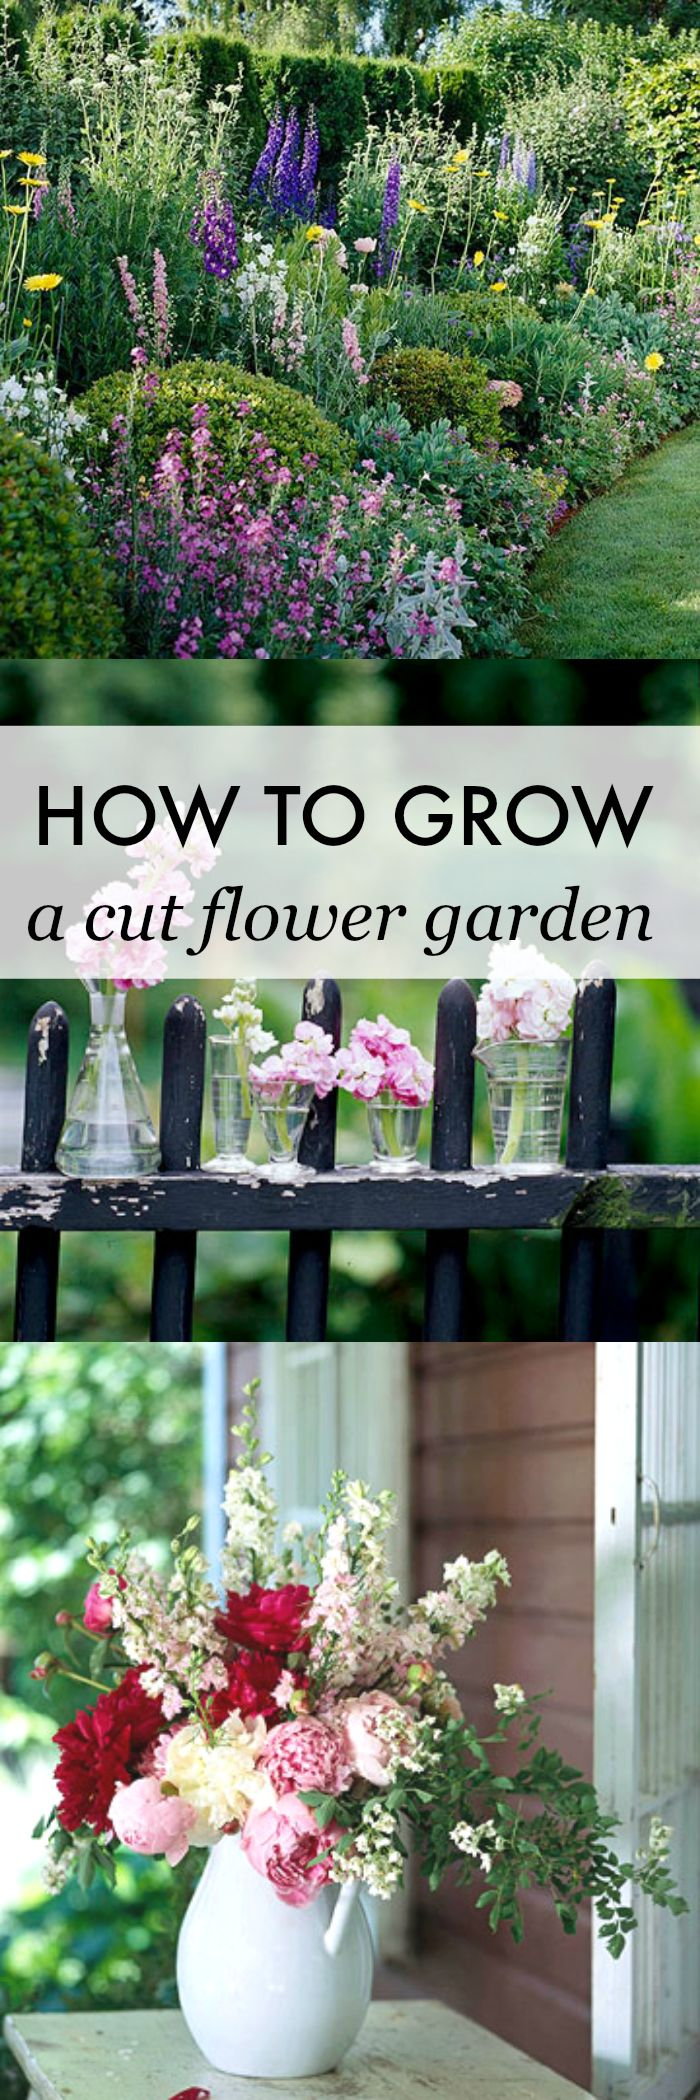 17 Best ideas about Flower Gardening on Pinterest Flowers garden